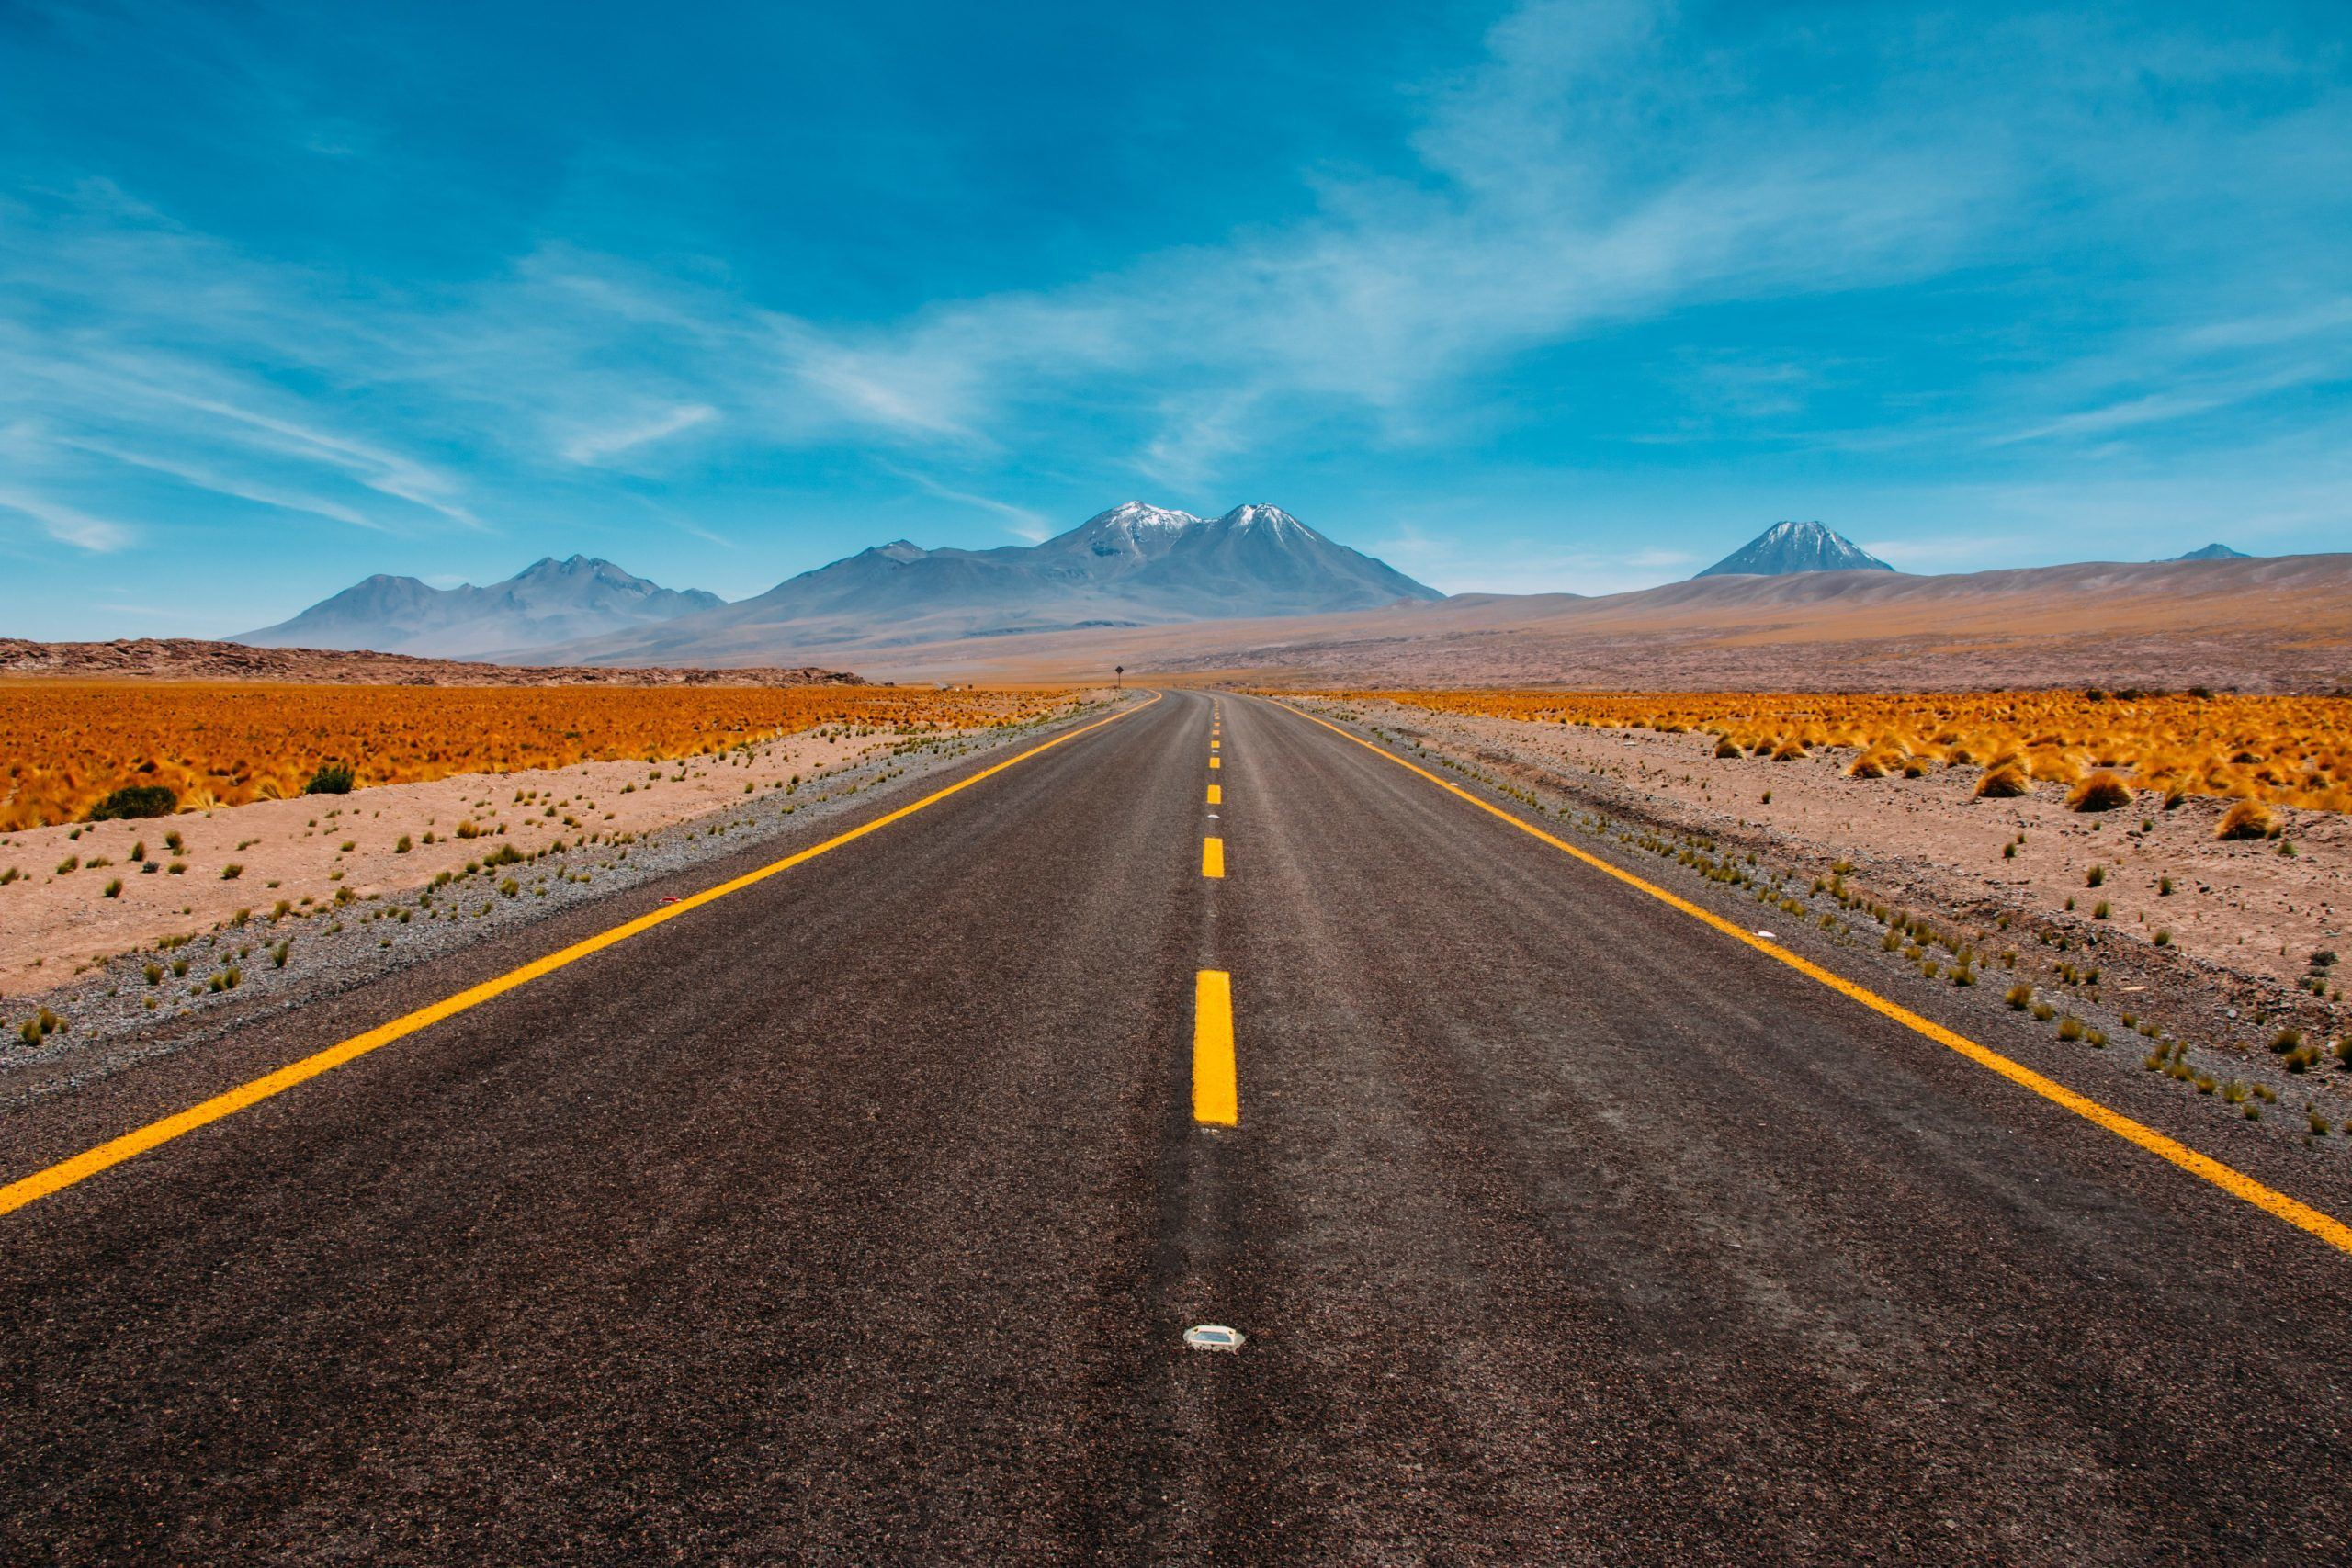 Image of a Road in the desert